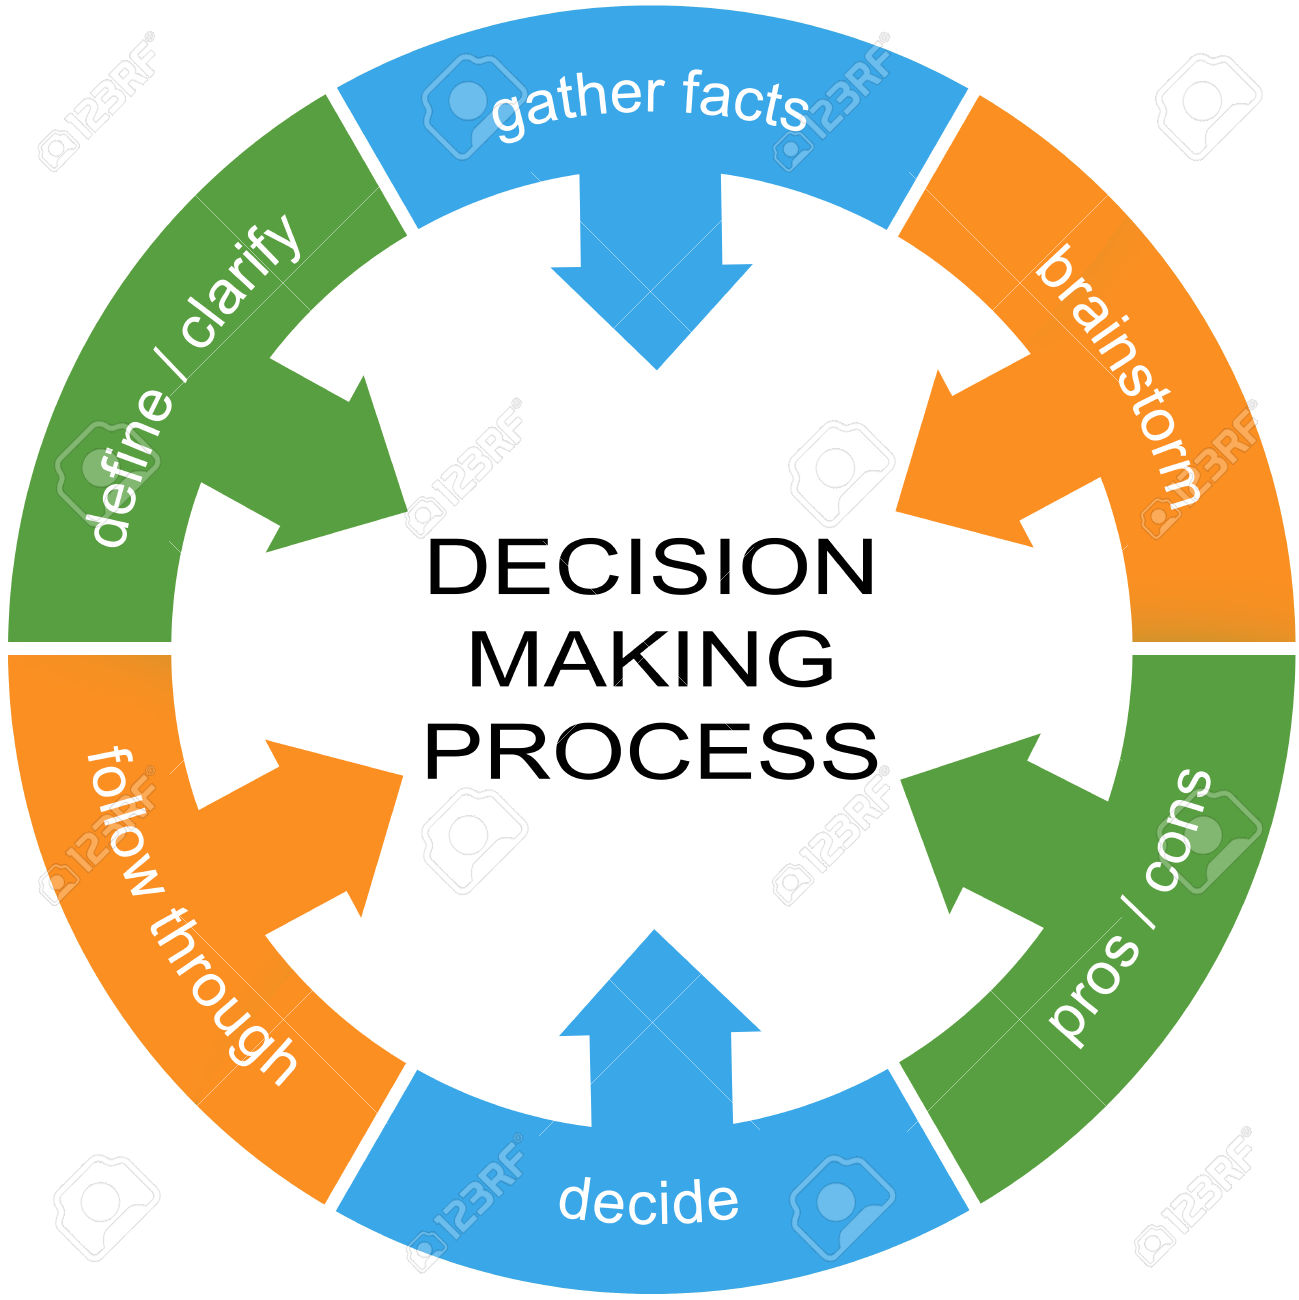 decision making process assignment help assignment and homework decision making process assignment help